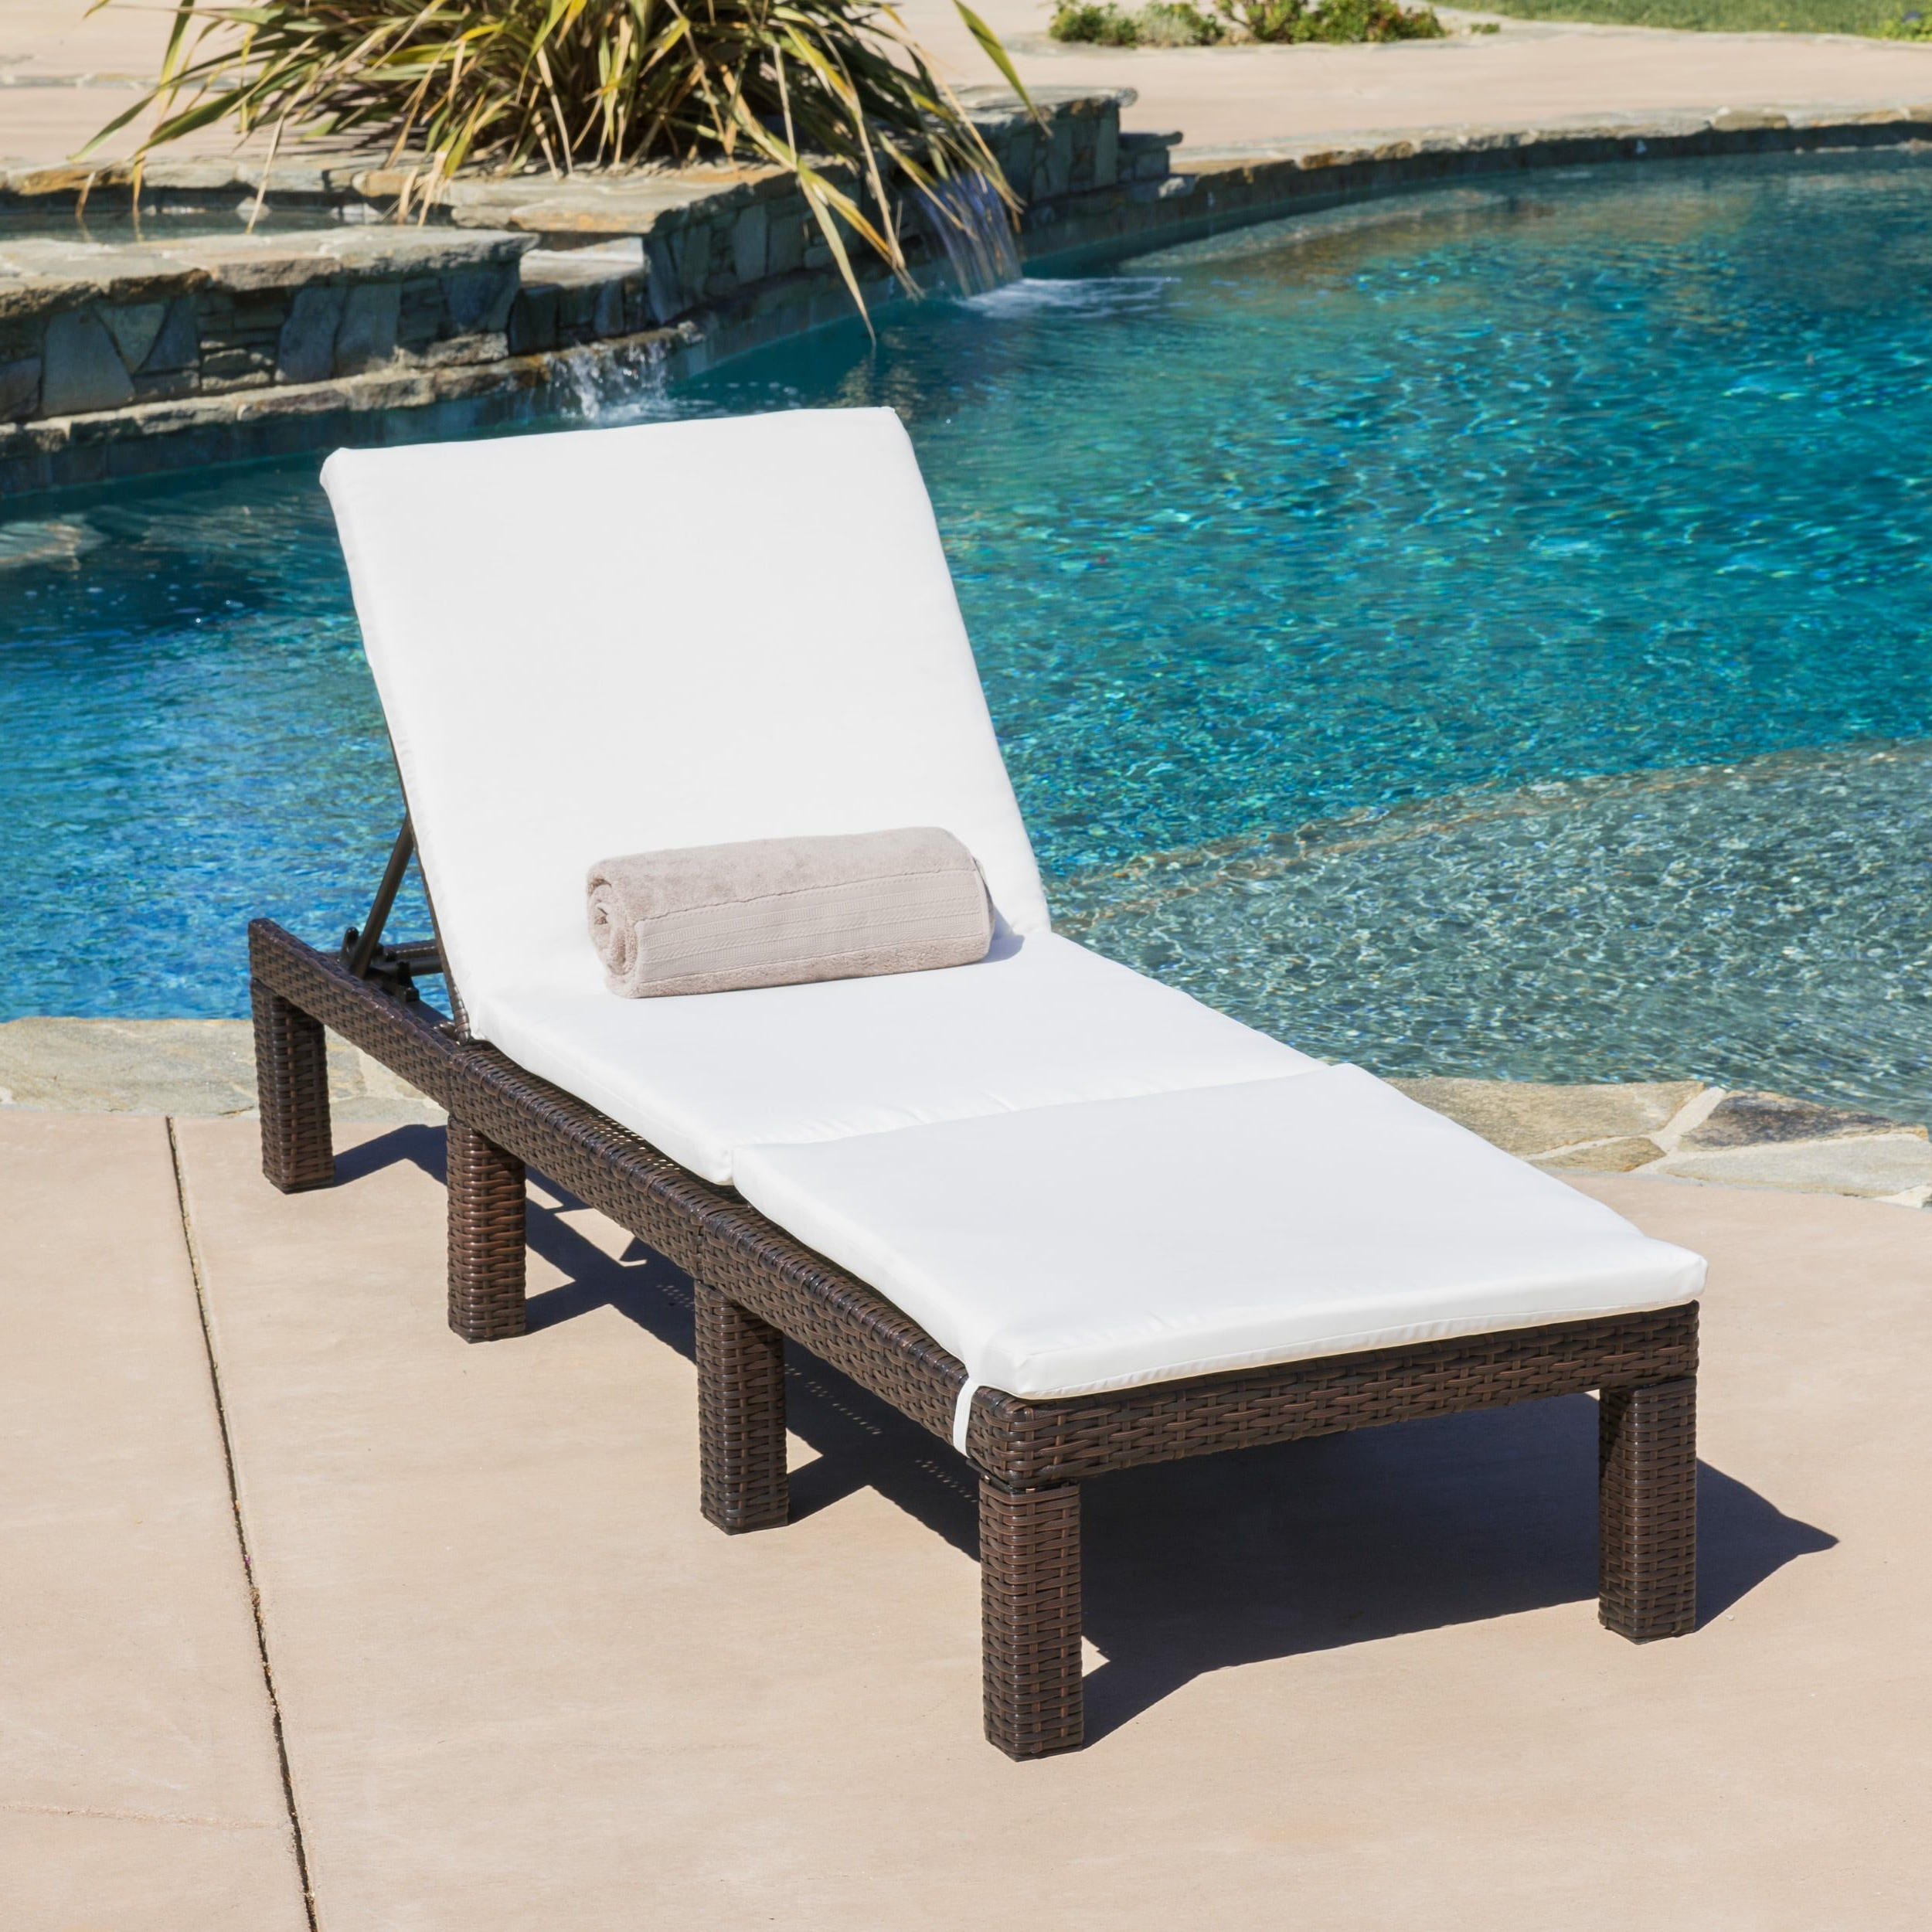 Jamaica Outdoor Wicker Chaise Lounges With Cushion With Regard To Most Recently Released Jamaica Outdoor Chaise Lounge With Cushionchristopher (View 6 of 25)